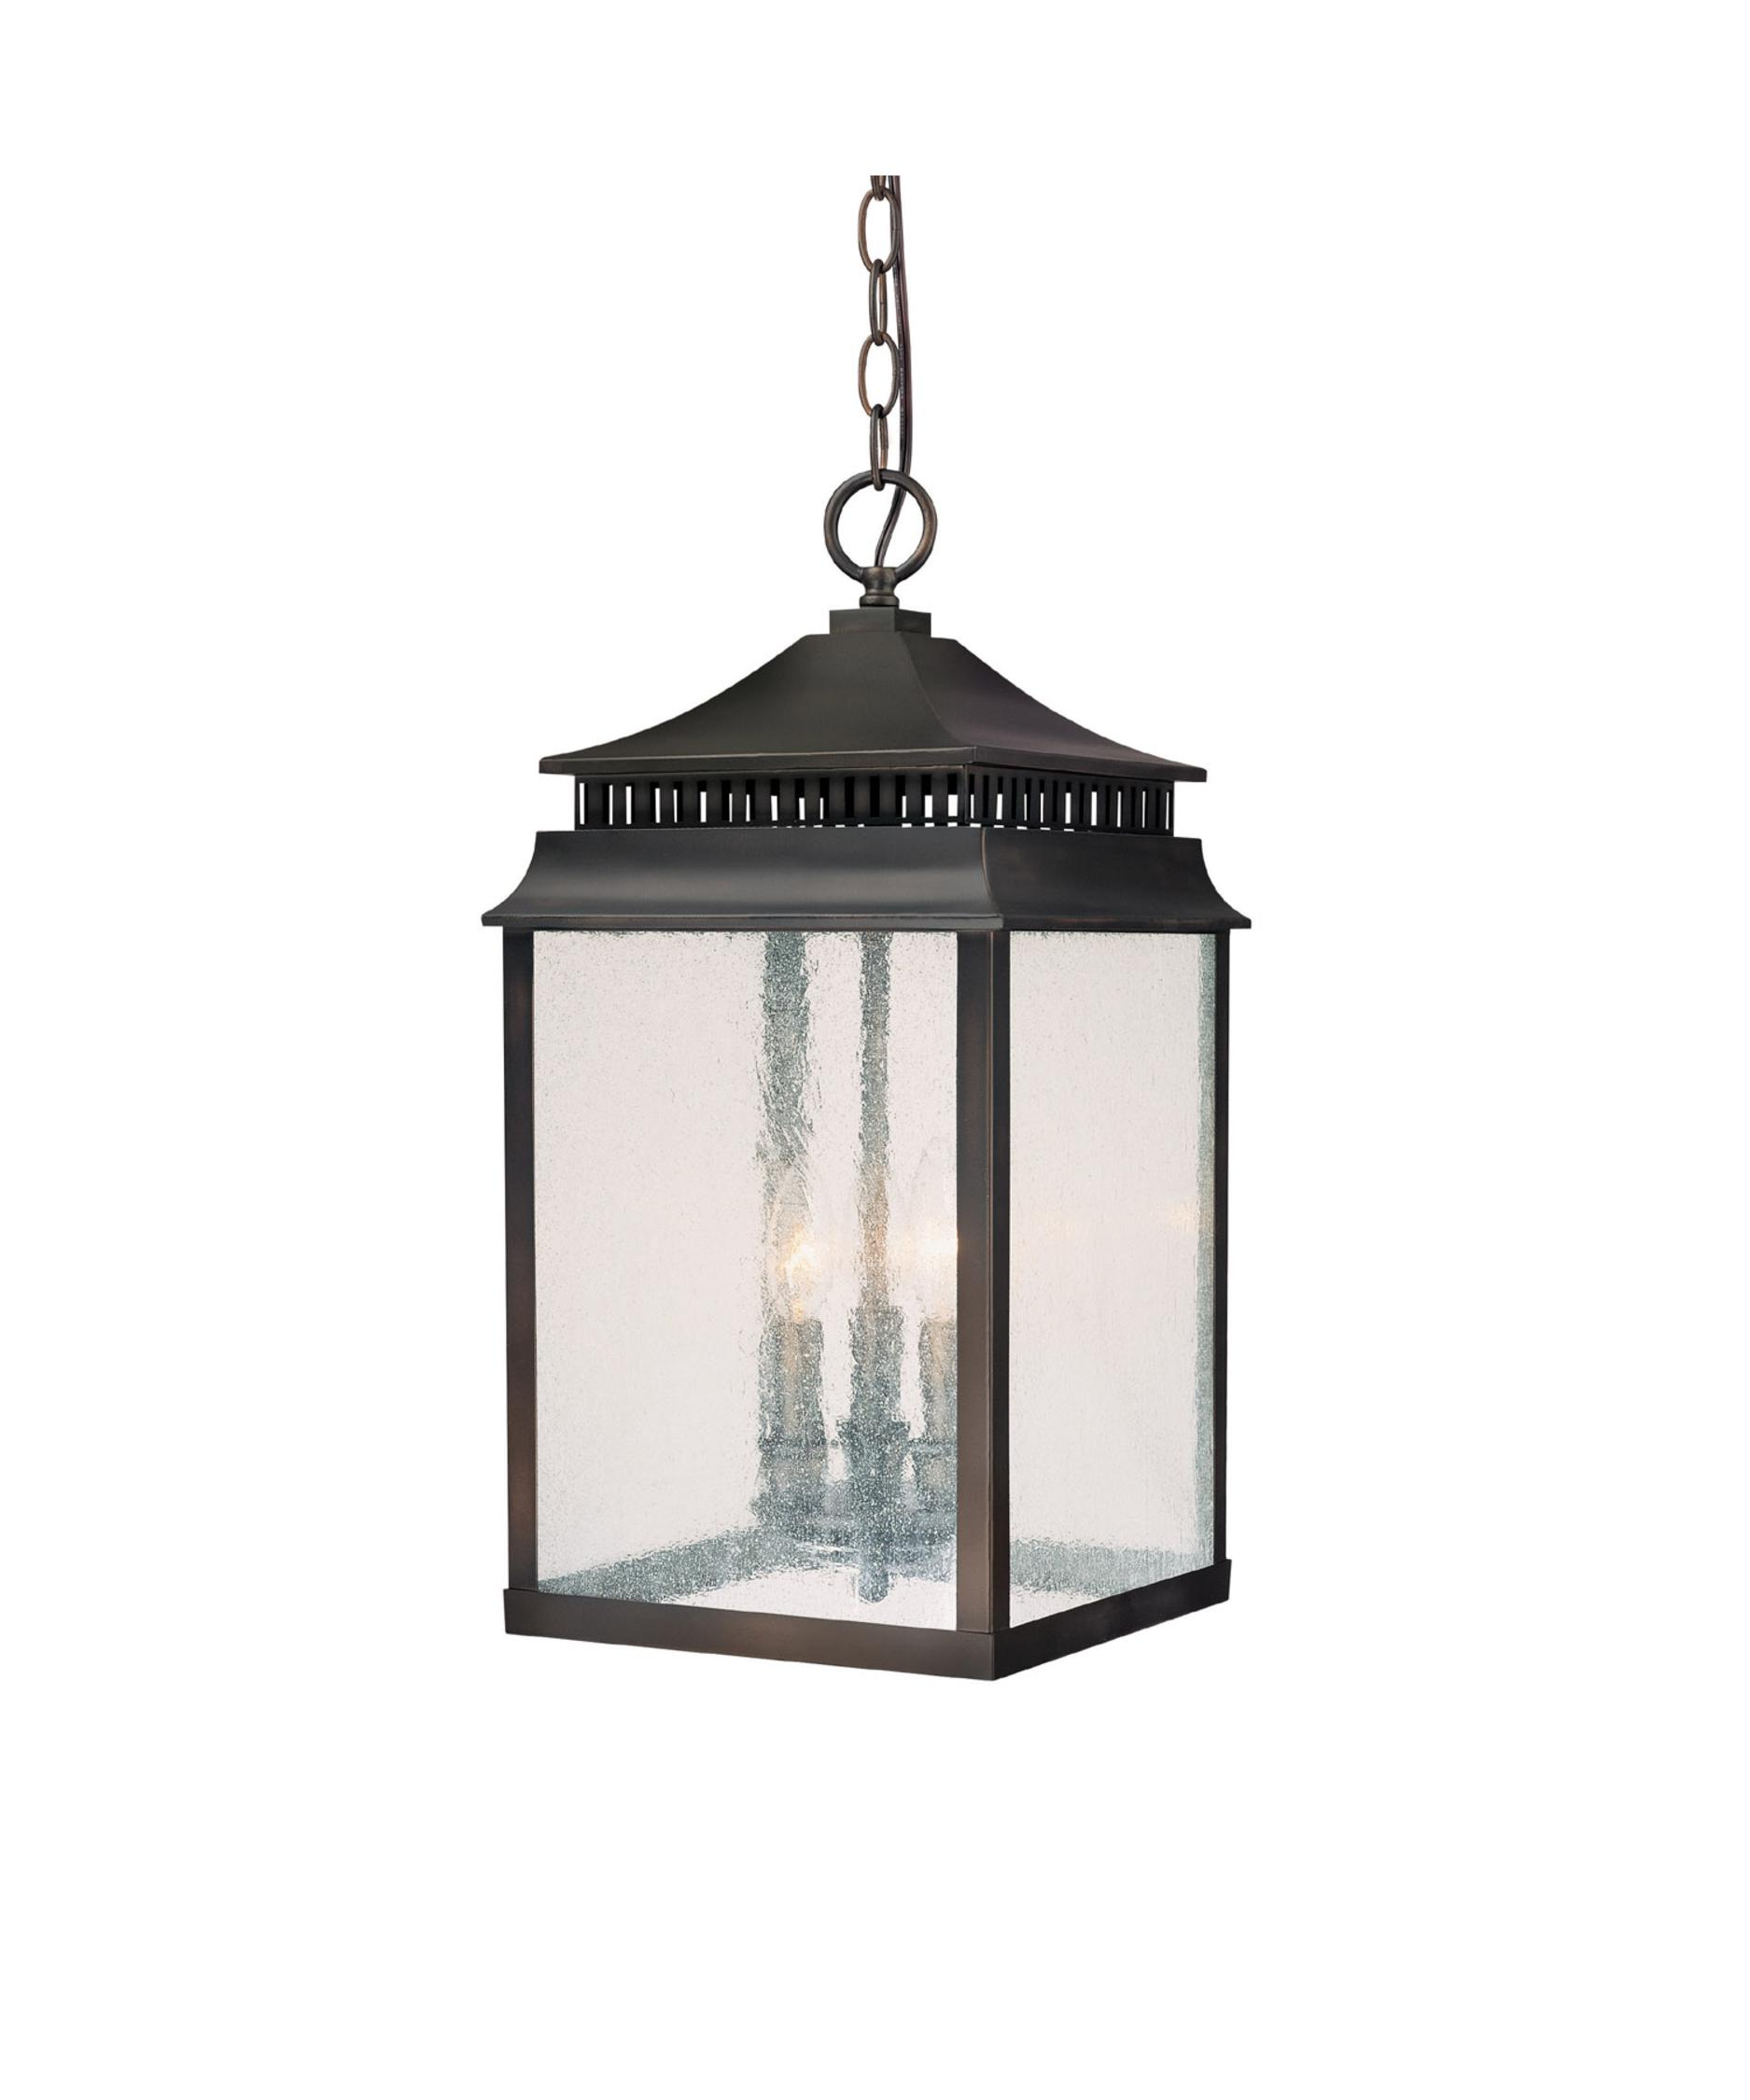 Outdoor hanging lighting - Shown In Olde Bronze Finish And Seeded Glass